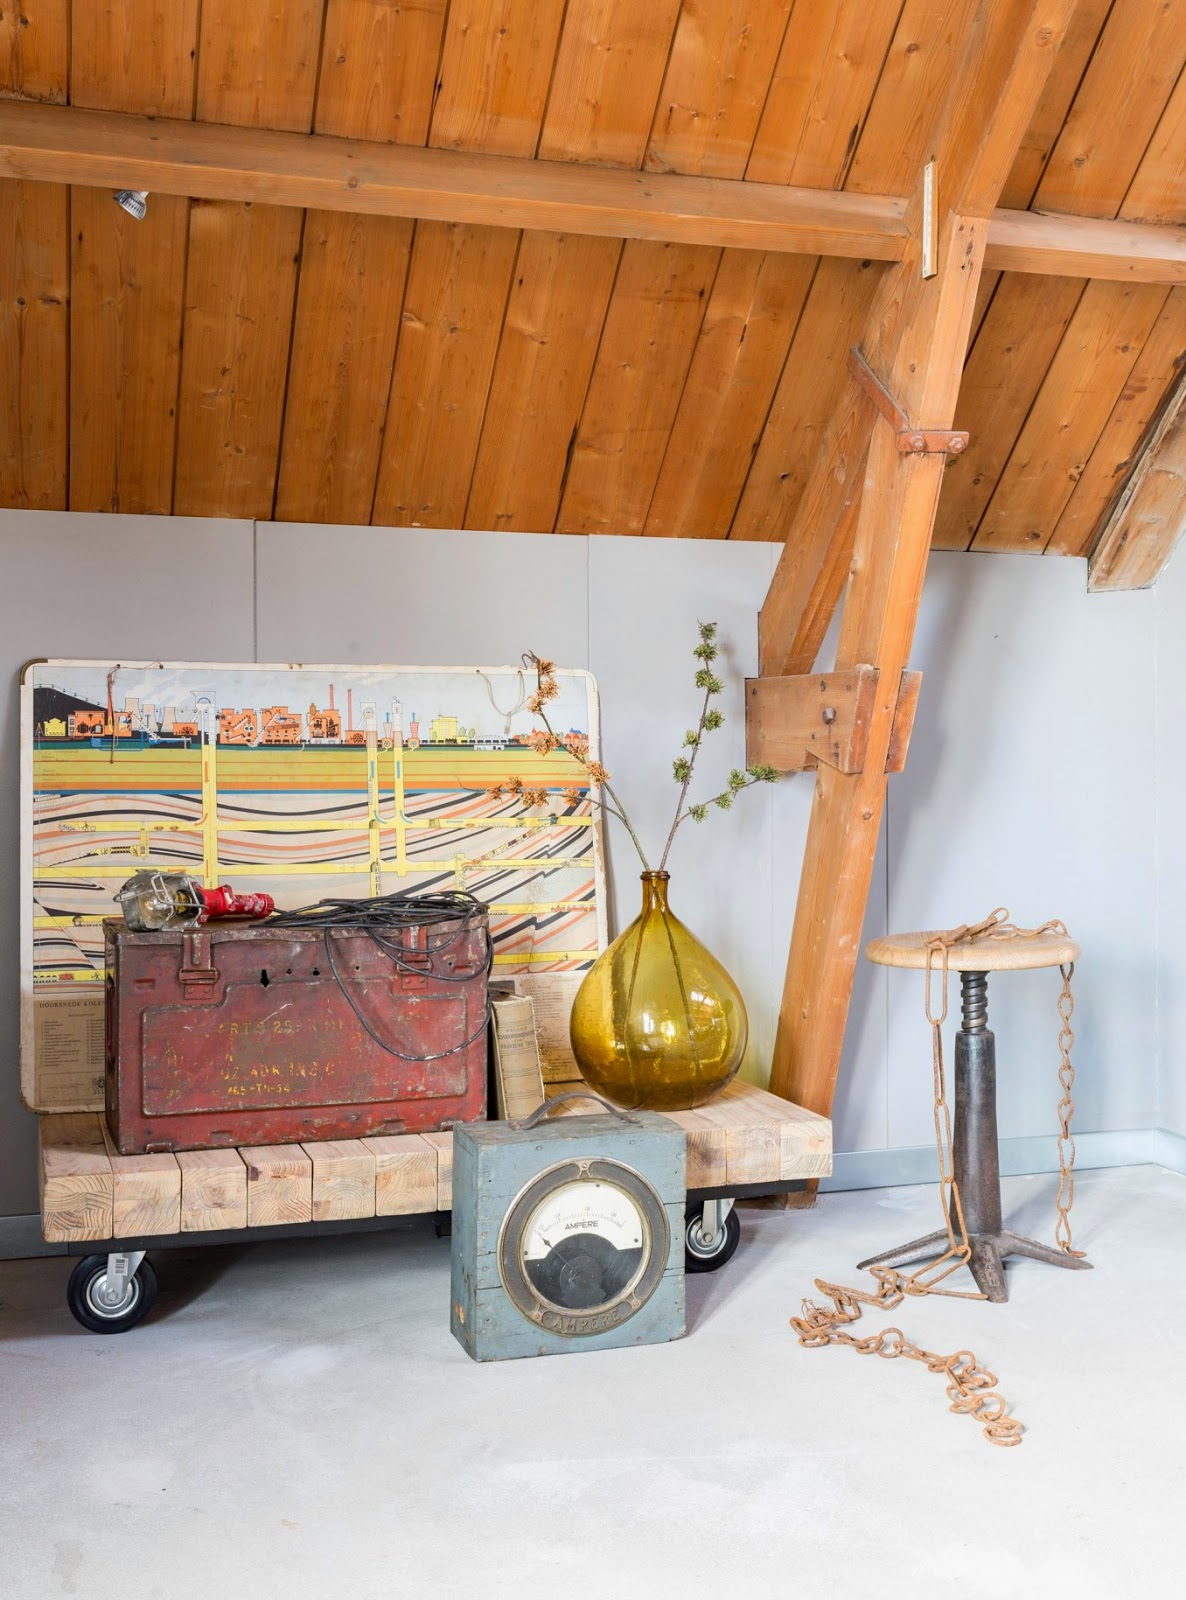 #84481B23648044  And Furniture Vintage Touches And A Fresh And Relaxing Atmosphere Meest effectief Vintage Design Meubelen Groningen 485 behang 11861600485 afbeeldingen